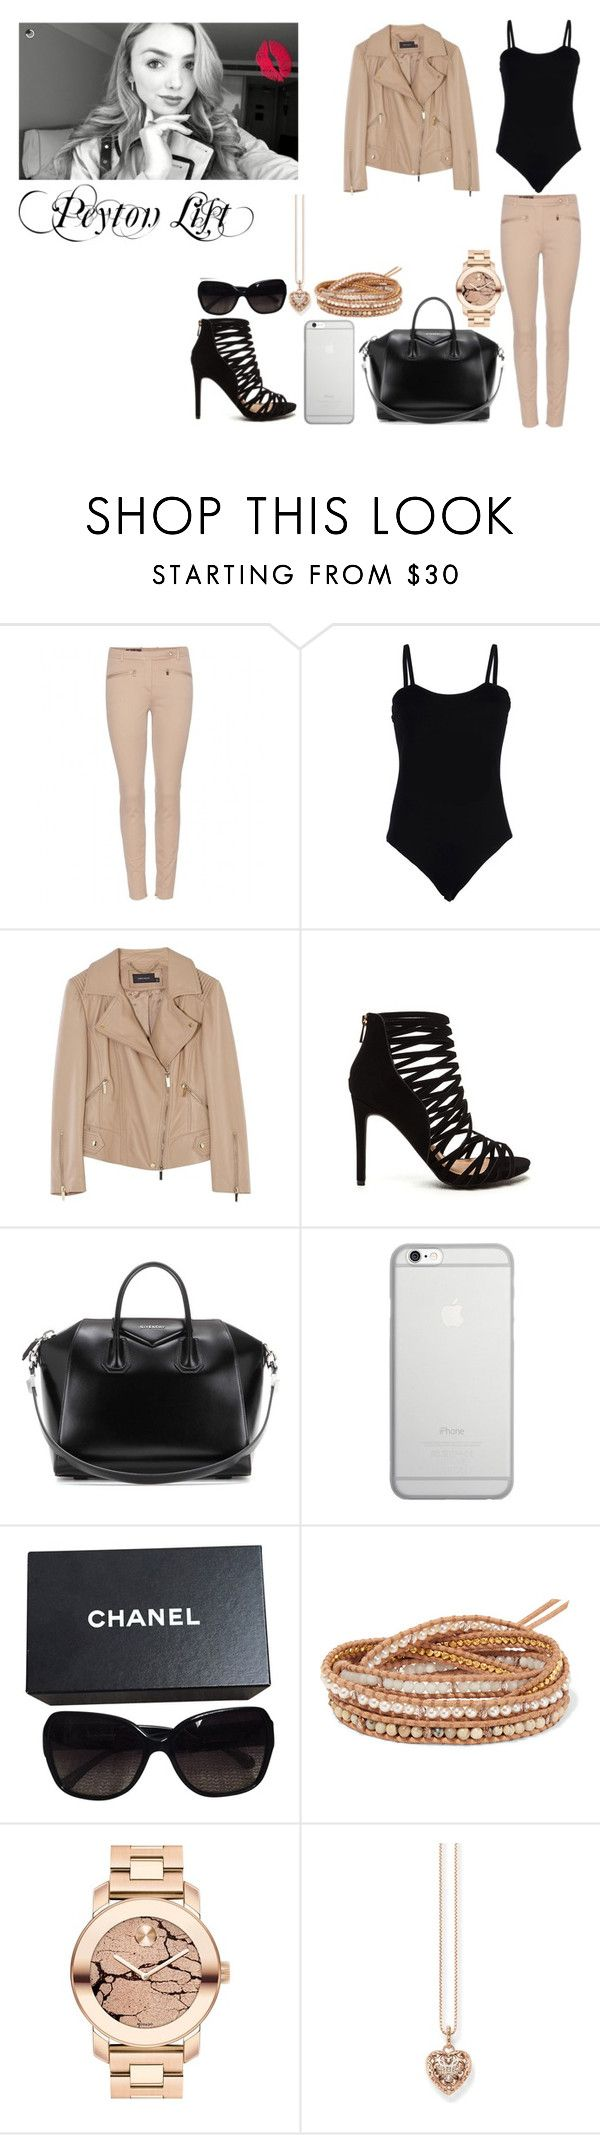 """Peyton List"" by ludya ❤ liked on Polyvore featuring Loro Piana, Baguette....., Karen Millen, Givenchy, Native Union, Chanel, Chan Luu, Movado and Thomas Sabo"